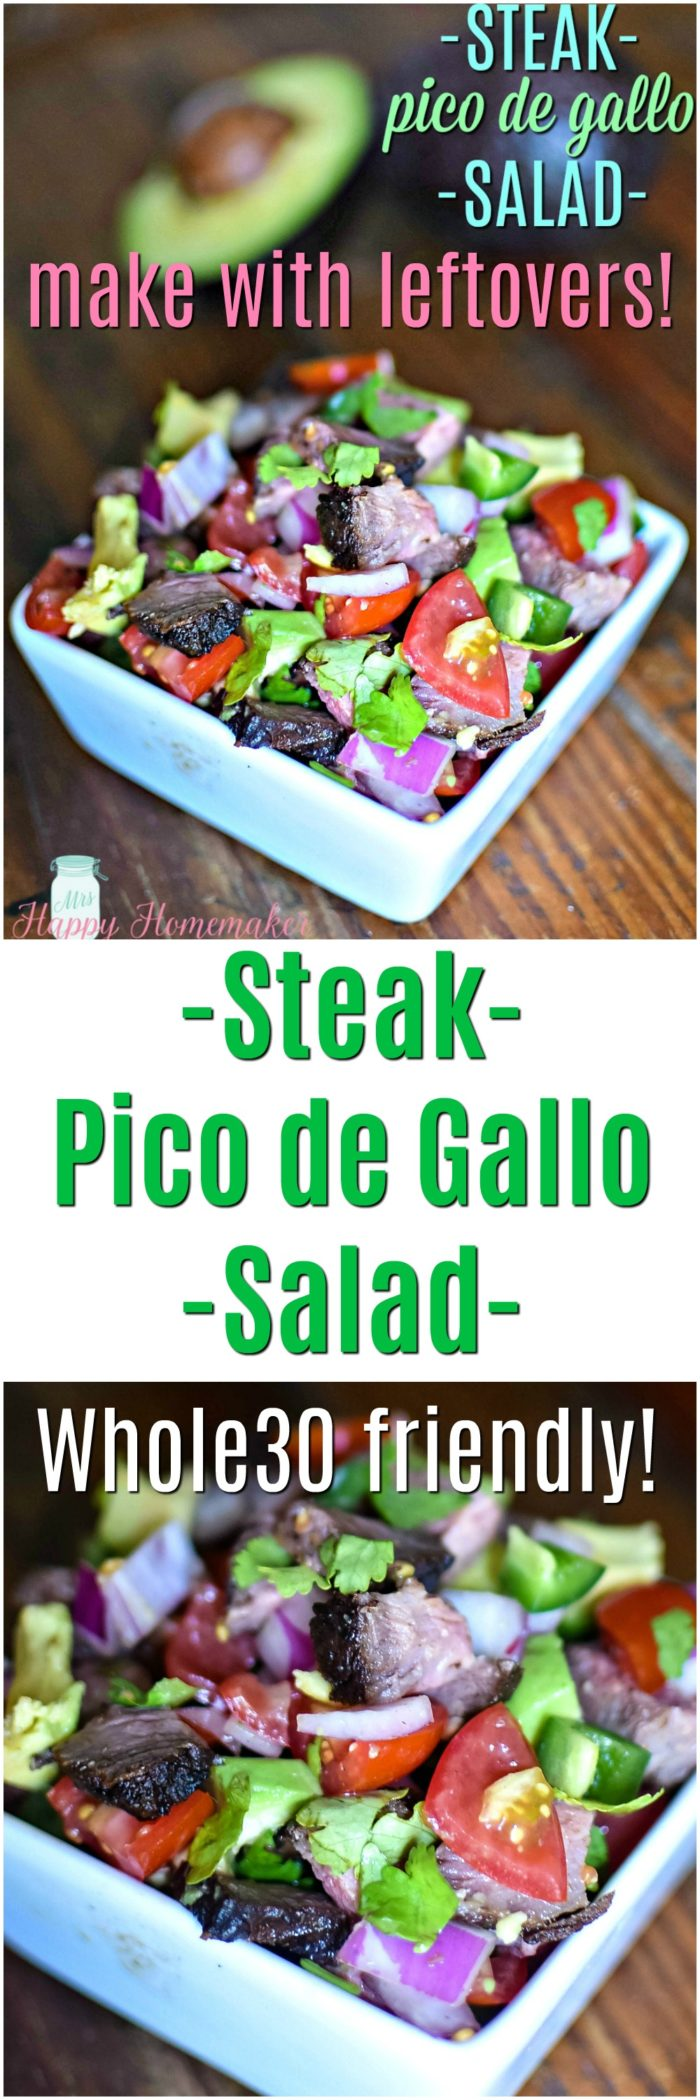 Steak Pico de Gallo Salad - this is a great way to use up any leftover steak, even a small amount. You can also use leftover shrimp or chicken. This recipe is so easy, super fresh & light, and it's Whole30 friendly. | MrsHappyHomemaker.com